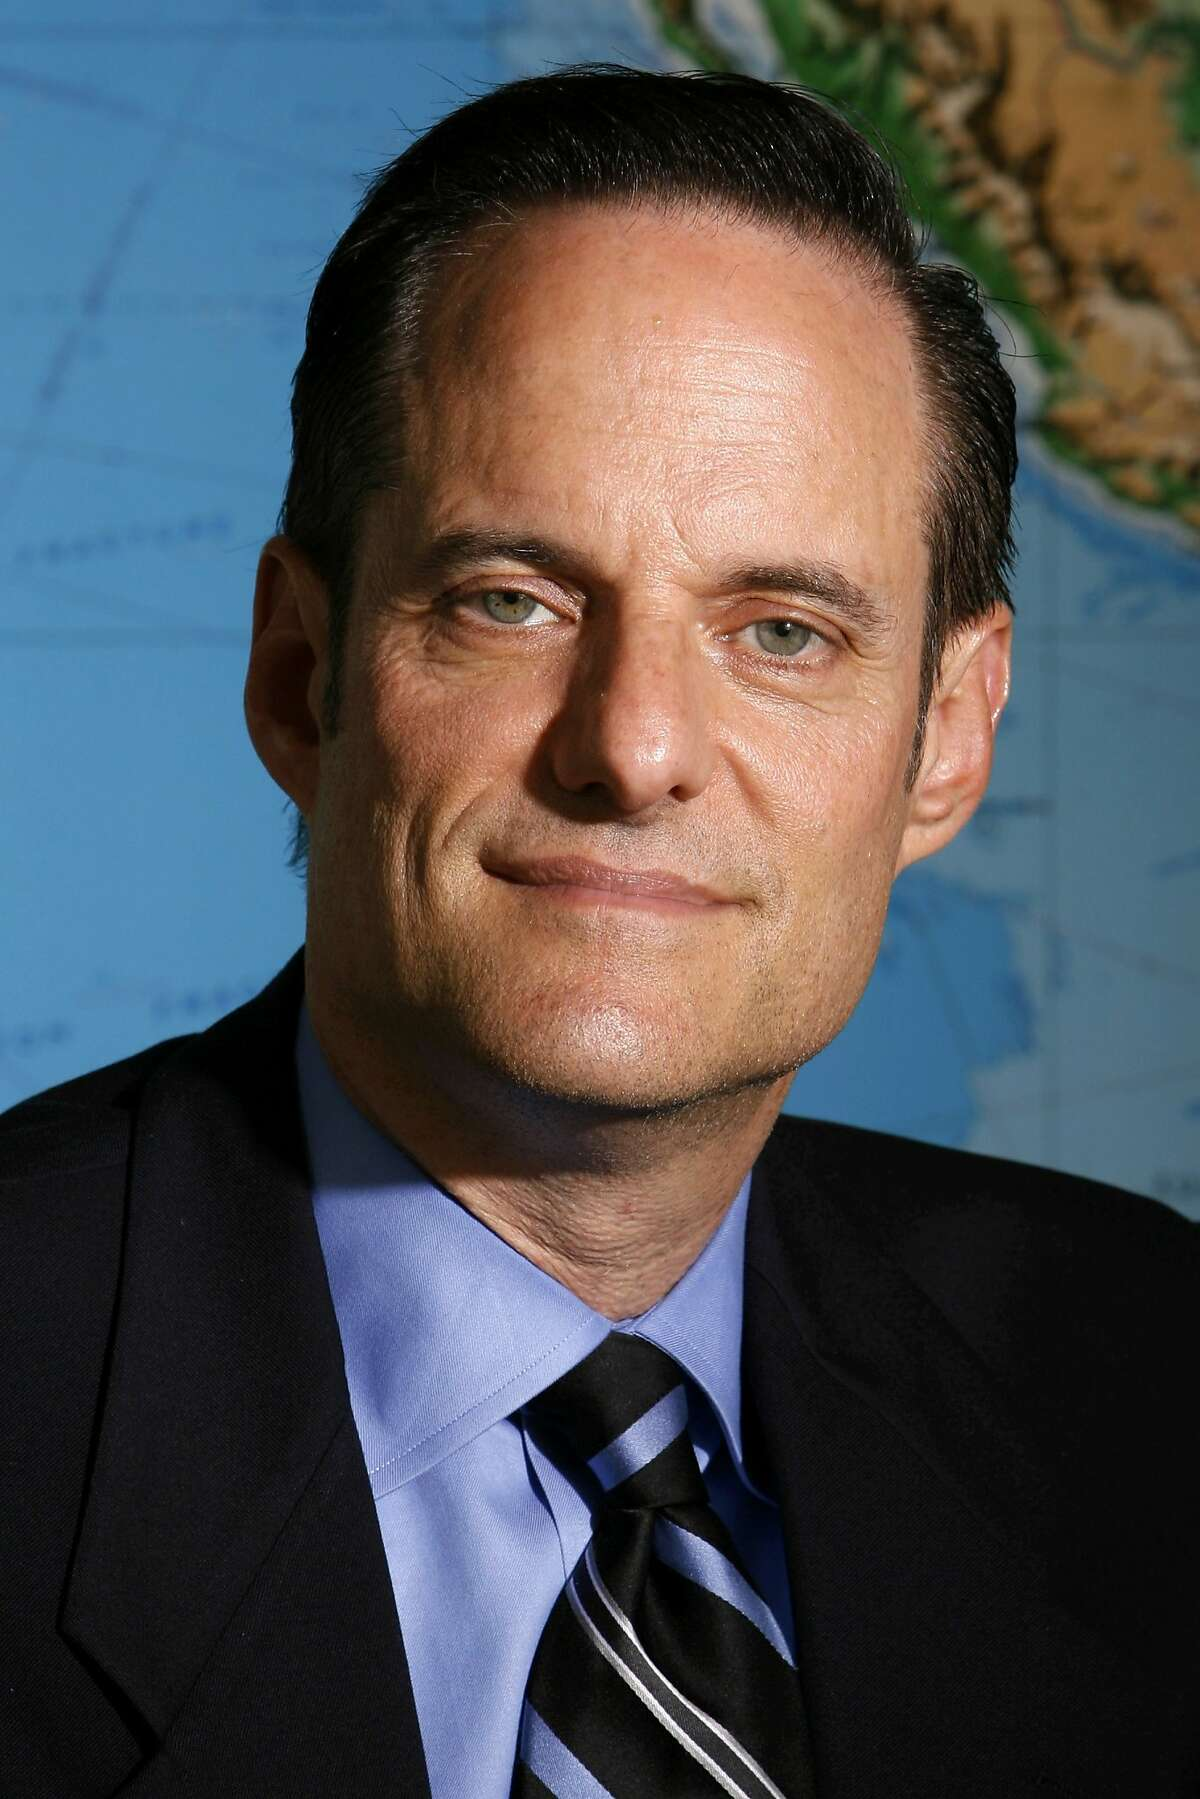 AIDS Healthcare Foundation President Michael Weinstein poses for a portrait in his office in Los Angeles August 8, 2006. A proposal in Congress to require that more of the federal money spent on uninsured AIDS patients go to drugs and doctor visits is drawing criticism from some AIDS groups, who say it will force cuts in basic services like meals and housing. Photo taken August 8, 2006. REUTERS/Danny Moloshok (UNITED STATES)